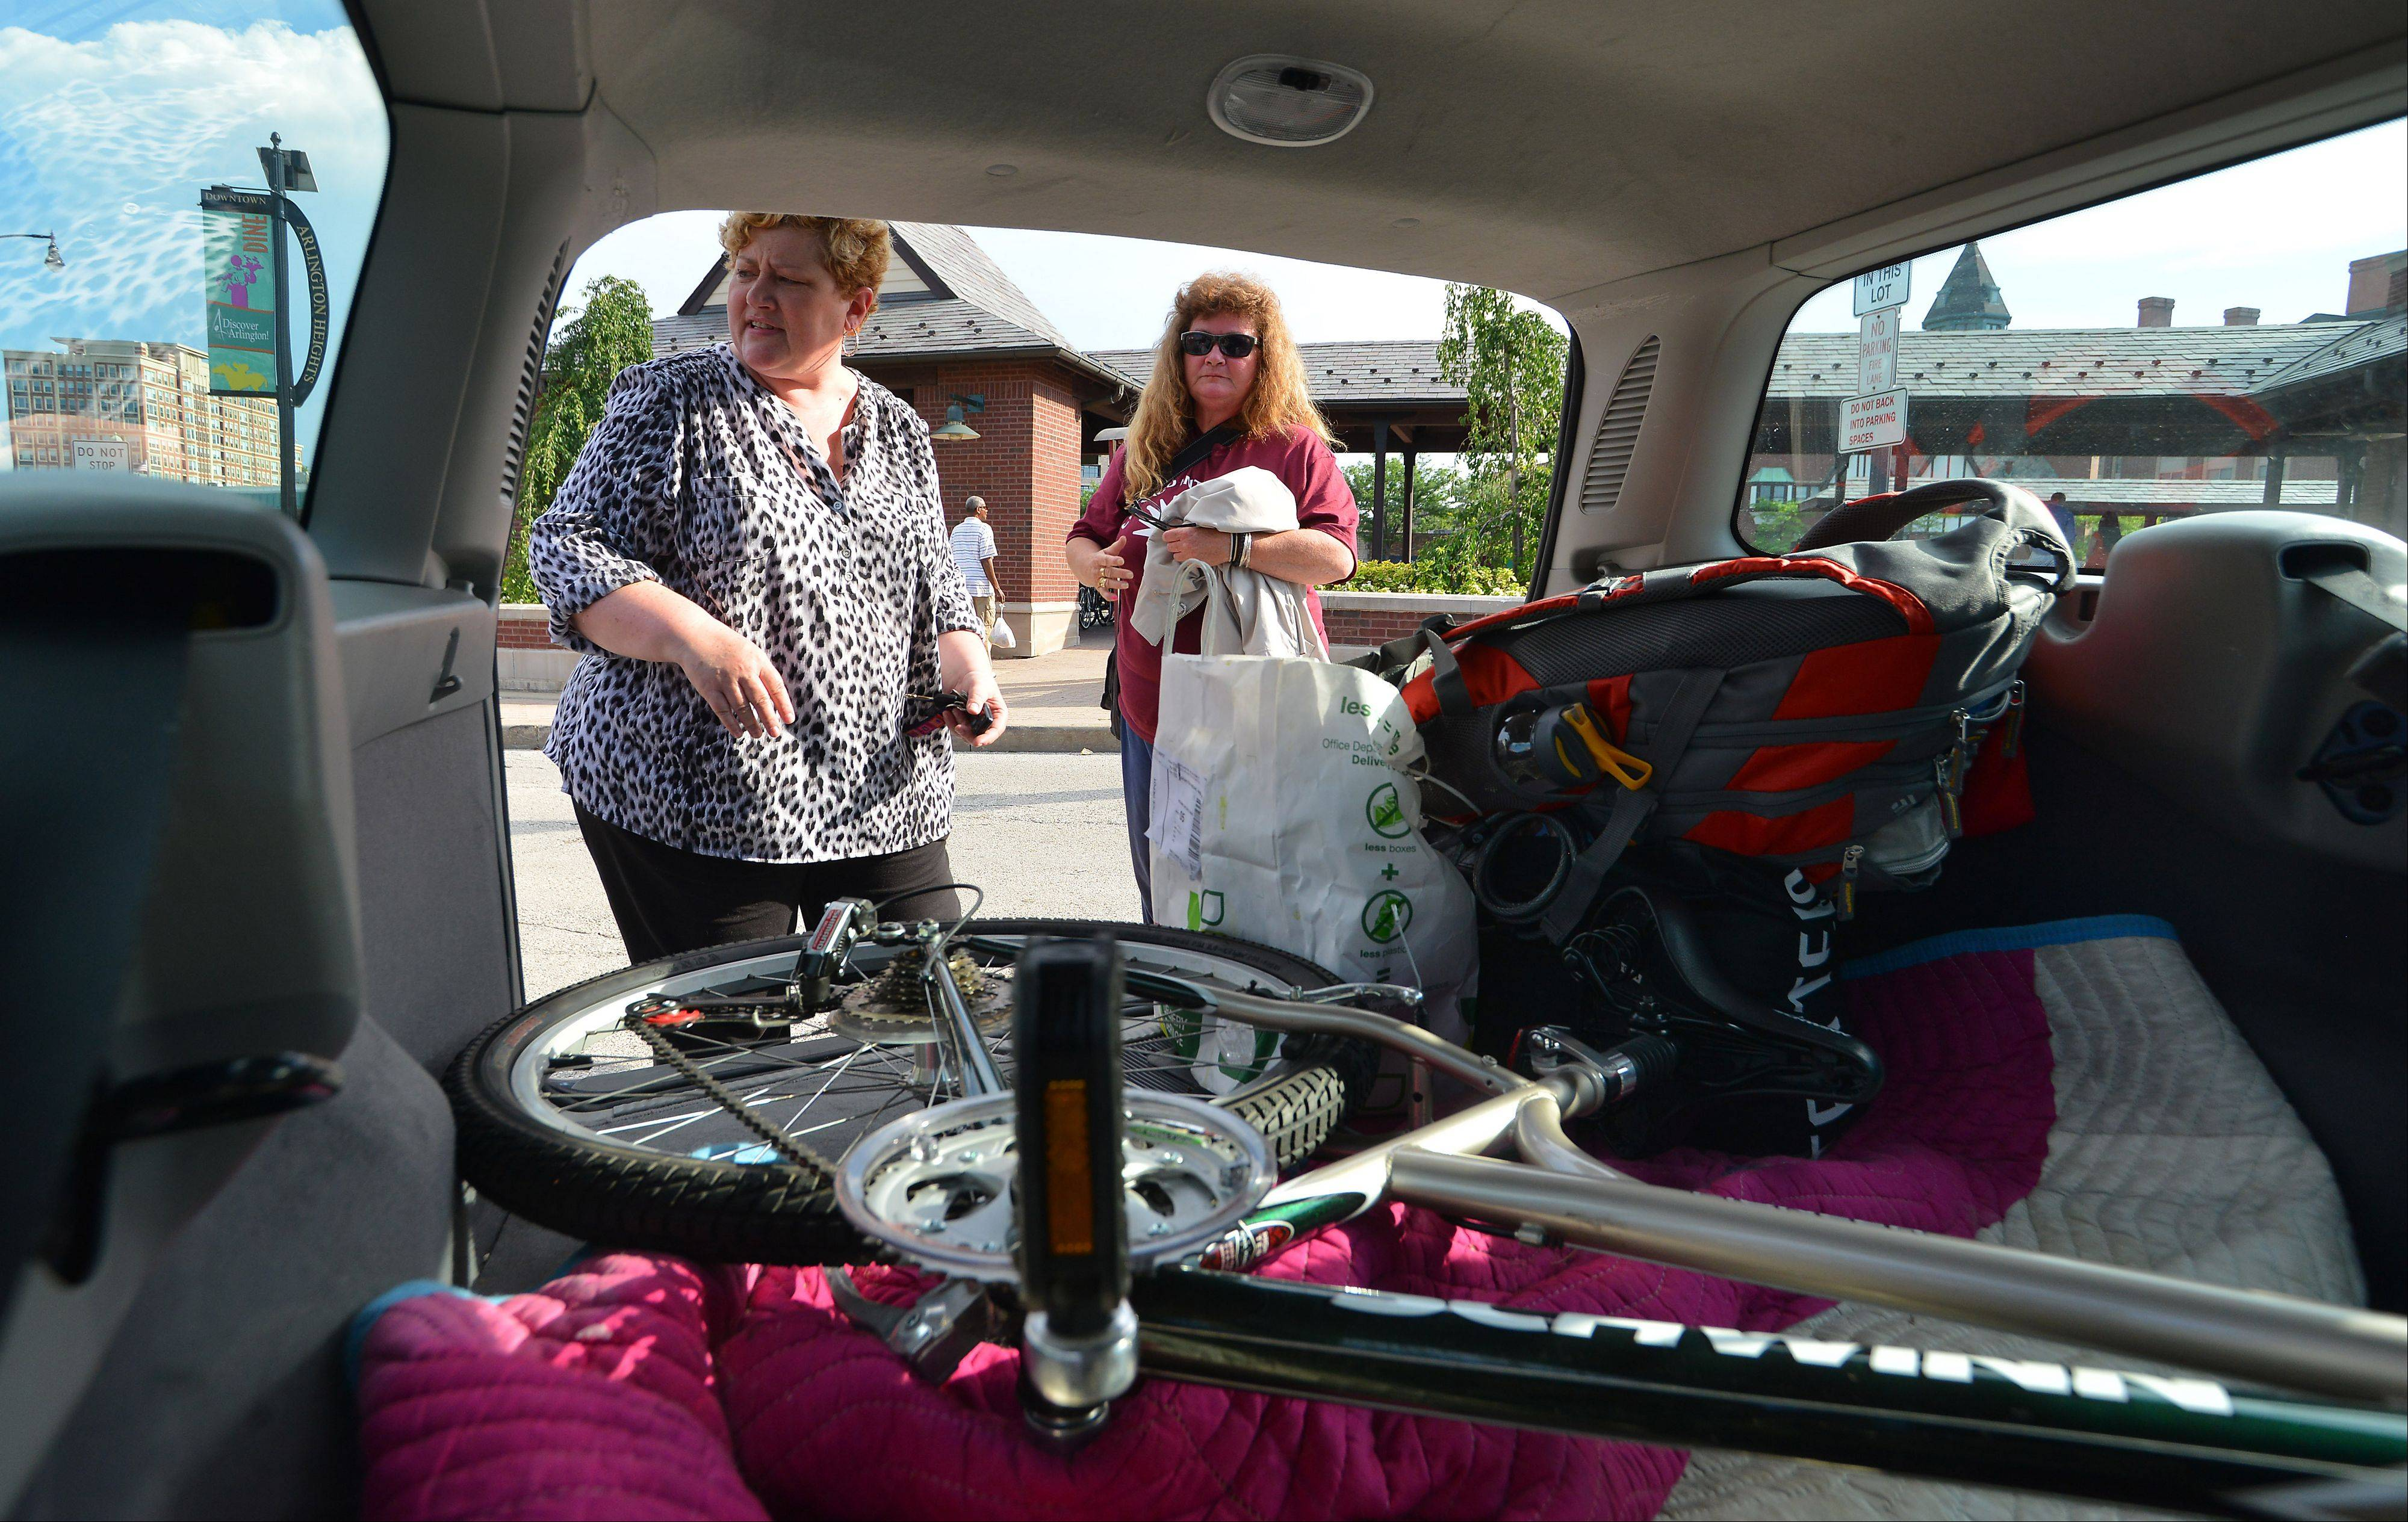 Kathy Kelly of Hoffman Estates, left, loads the bike and belongings into her car, before the two women went to get something to eat.